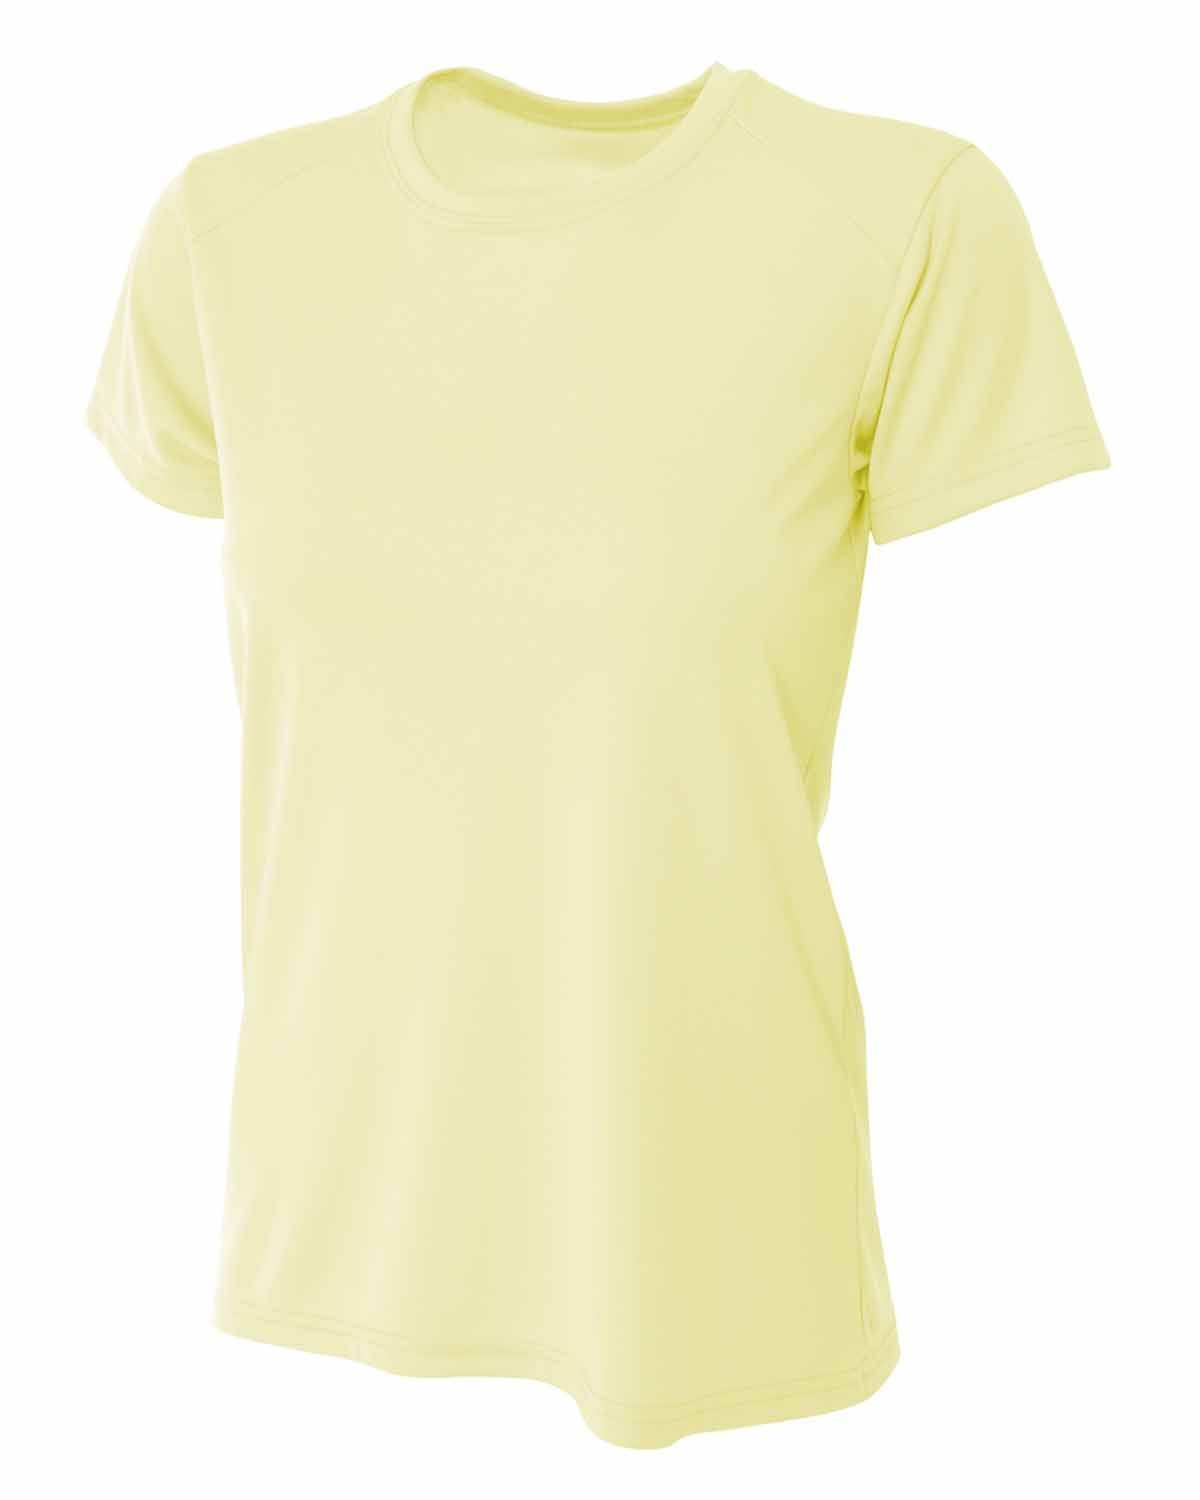 A4 Ladies' Cooling Performance T-Shirt LIGHT YELLOW